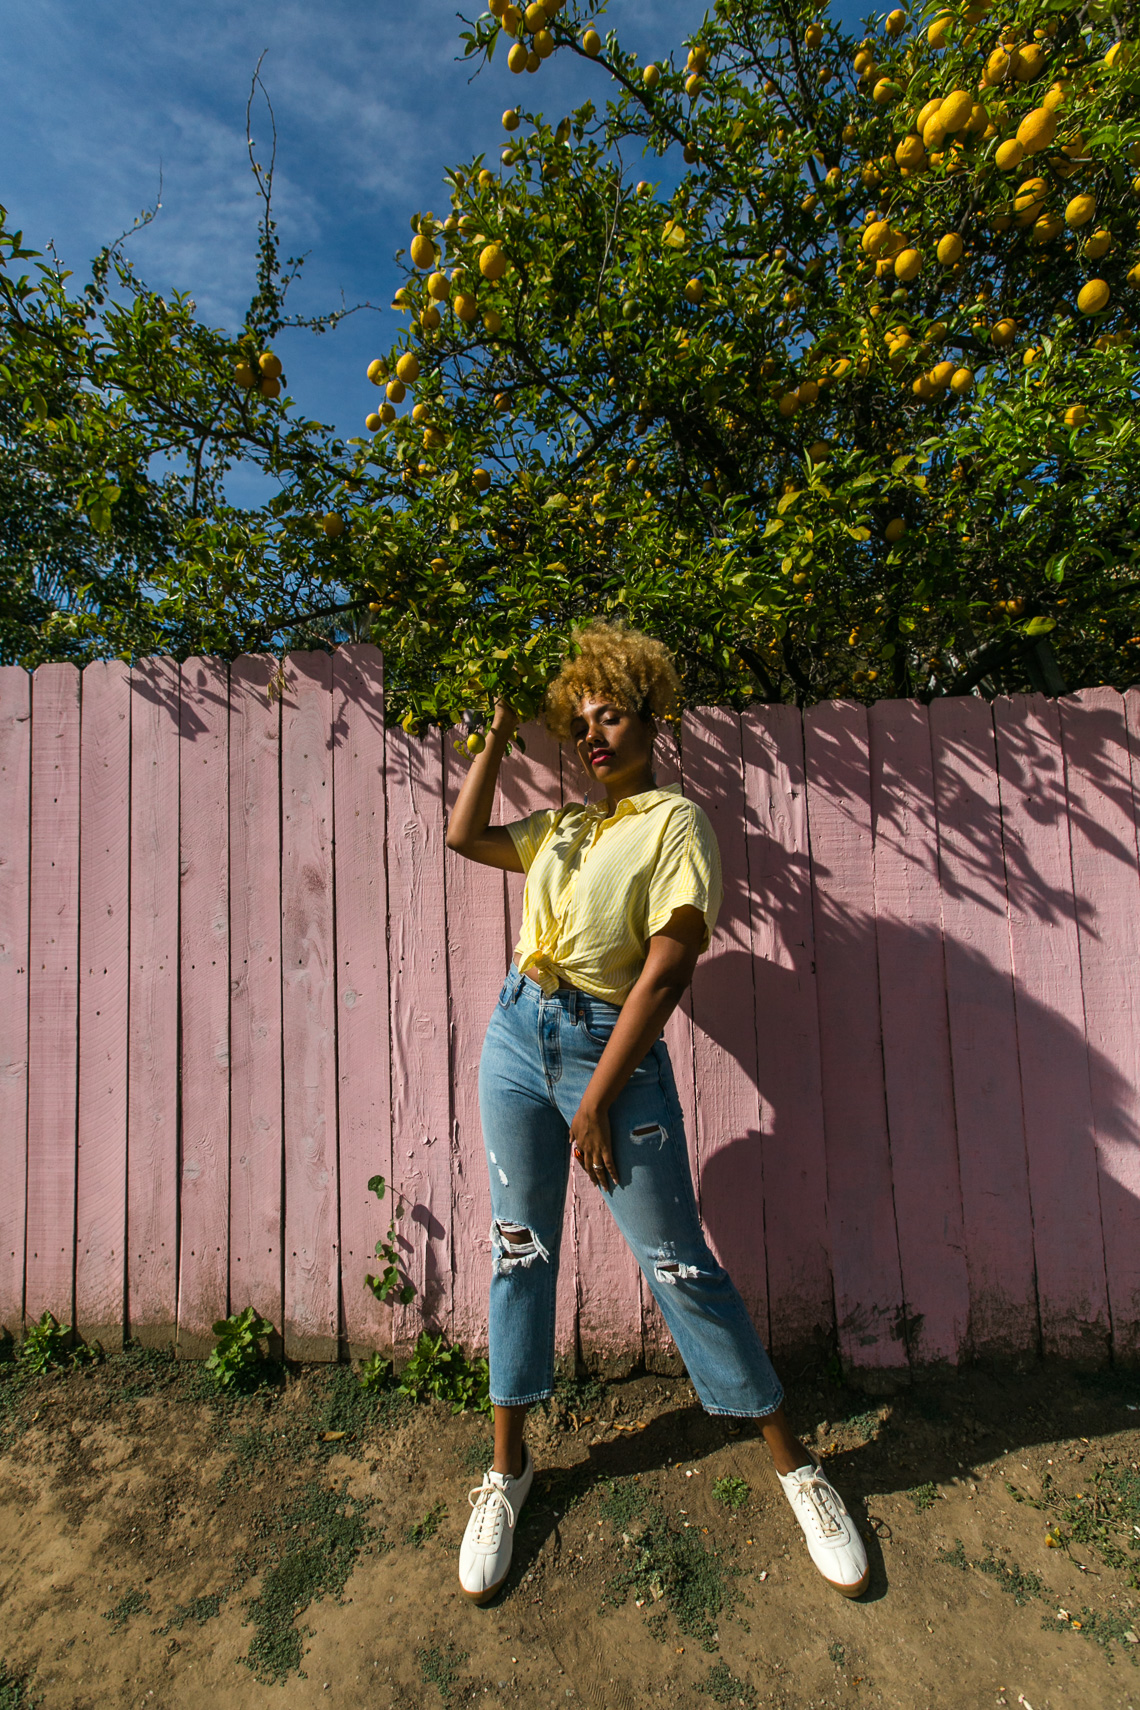 lemon tree-shadow play-yellow shirt-model-wear who you are-h&m shirt-pink fence-levis wedgie fit jeans